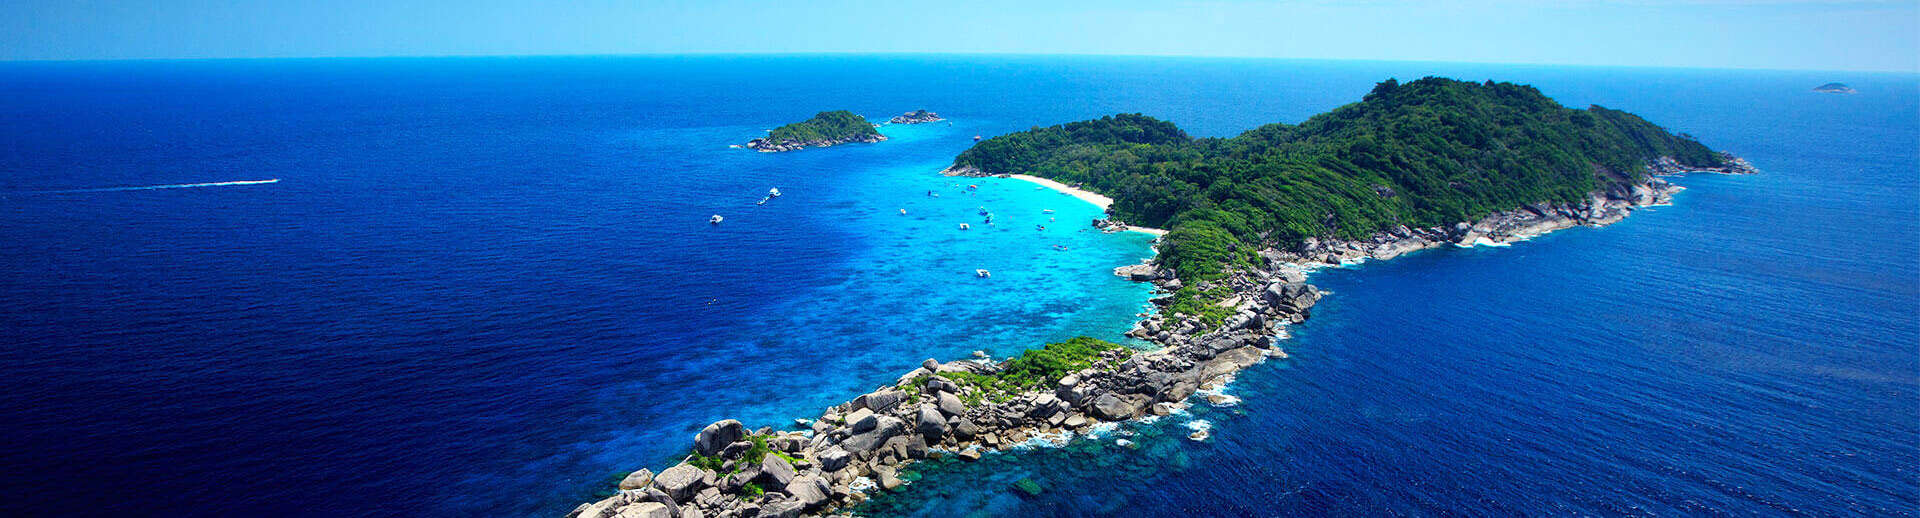 phuket to similan islands day trip